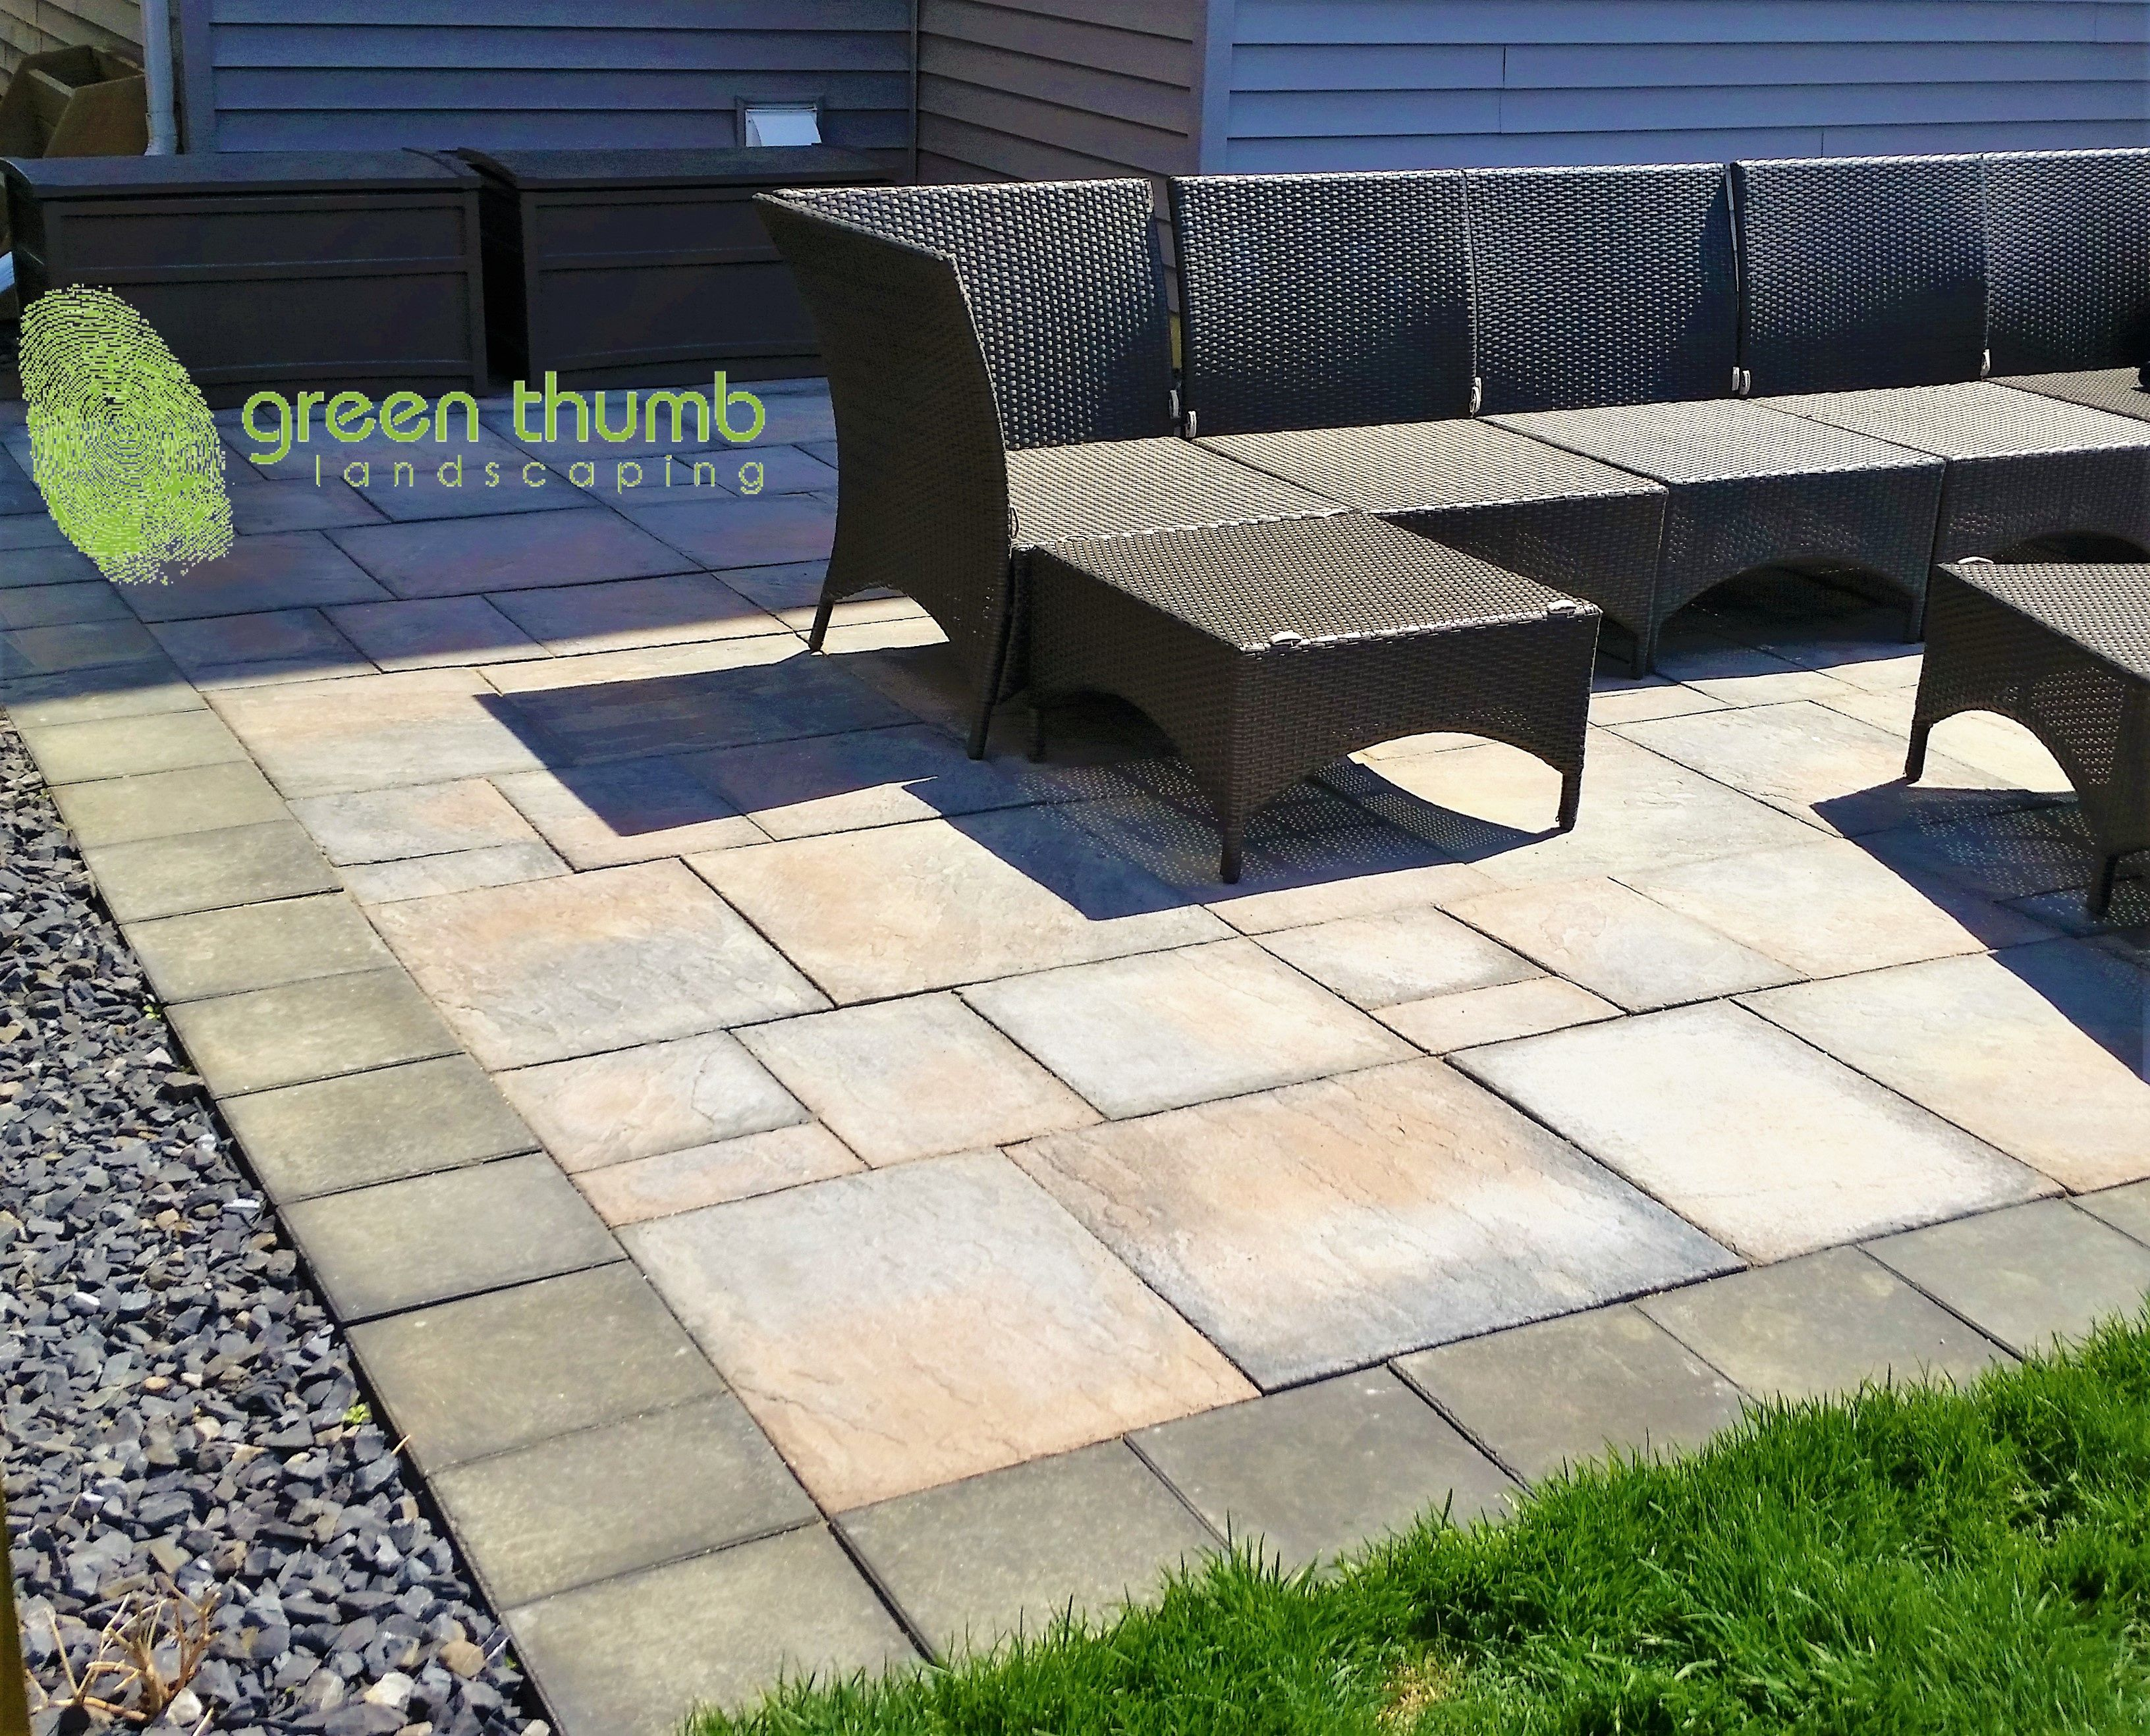 A Barkman Dynasty Paving Stone Patio With An Expocrete Double Holland  Boarder. This Space Will